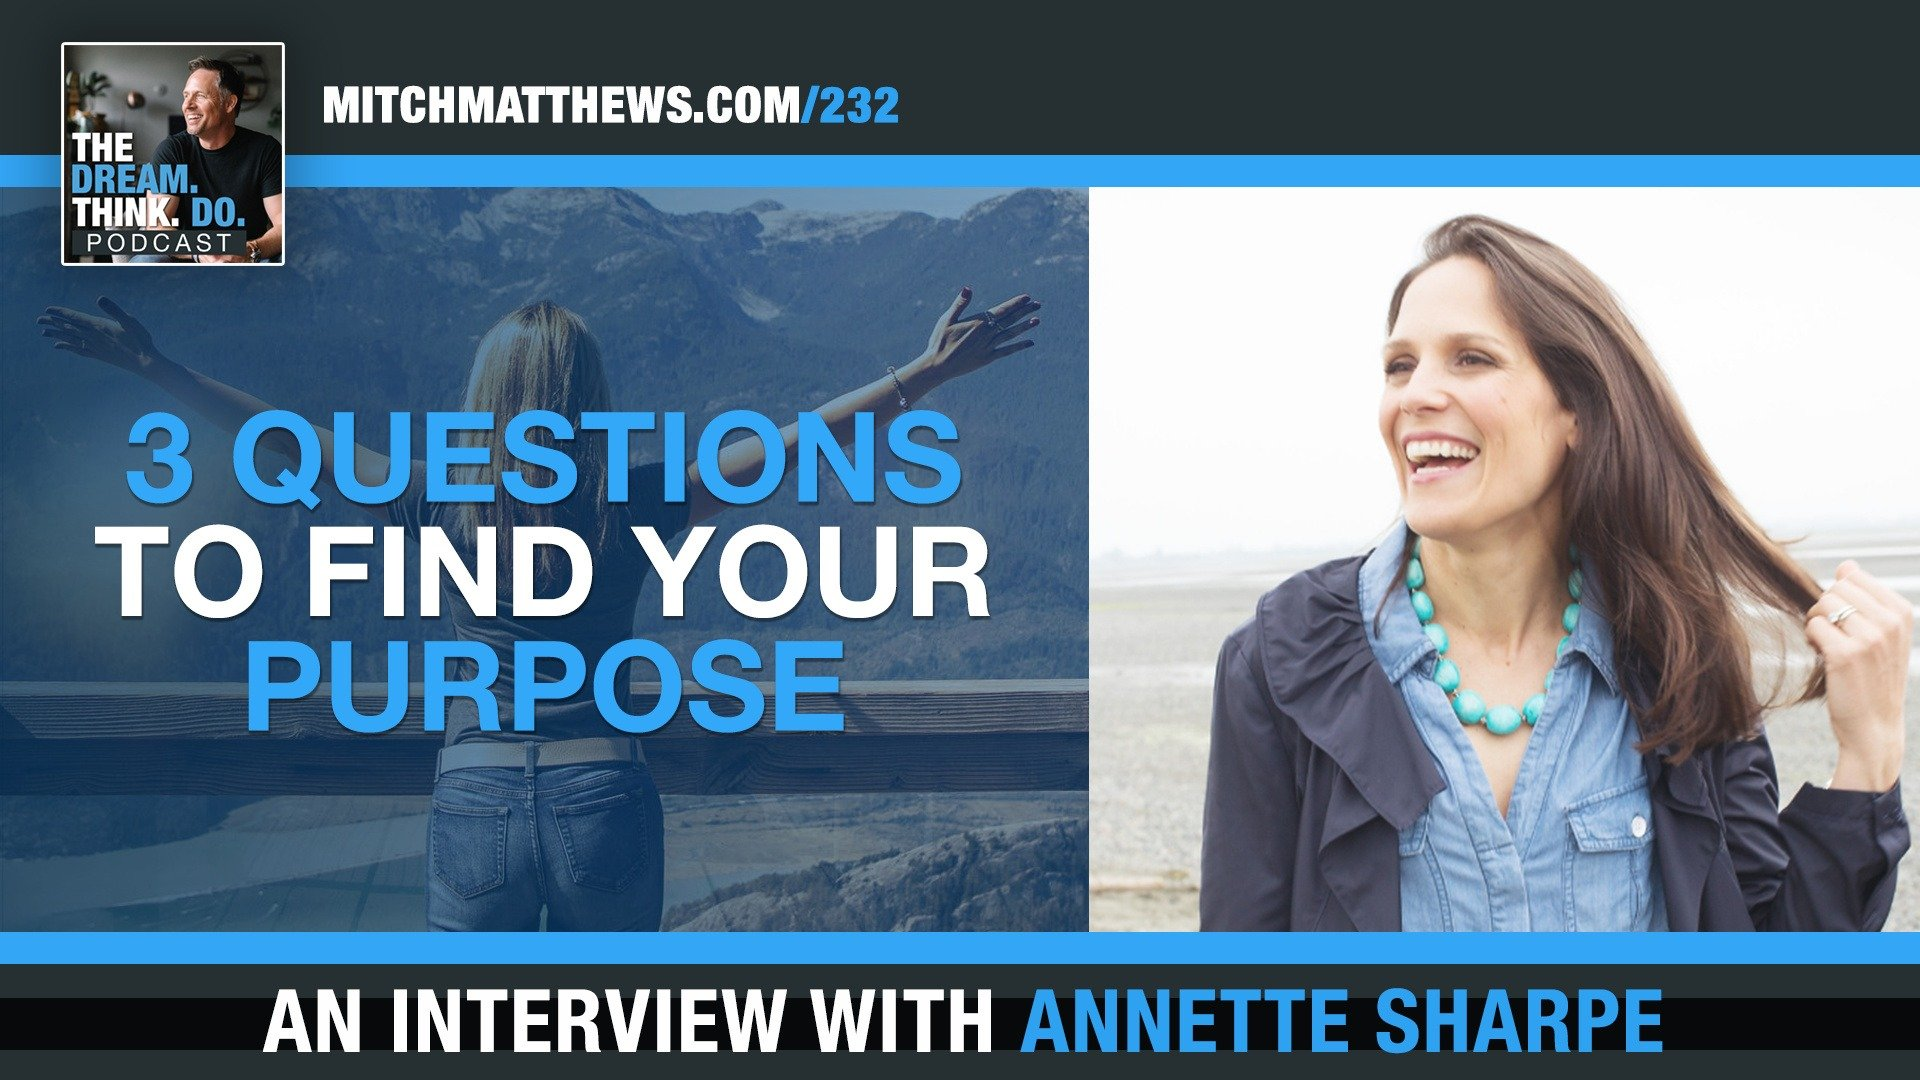 An interview with Annette Sharpe